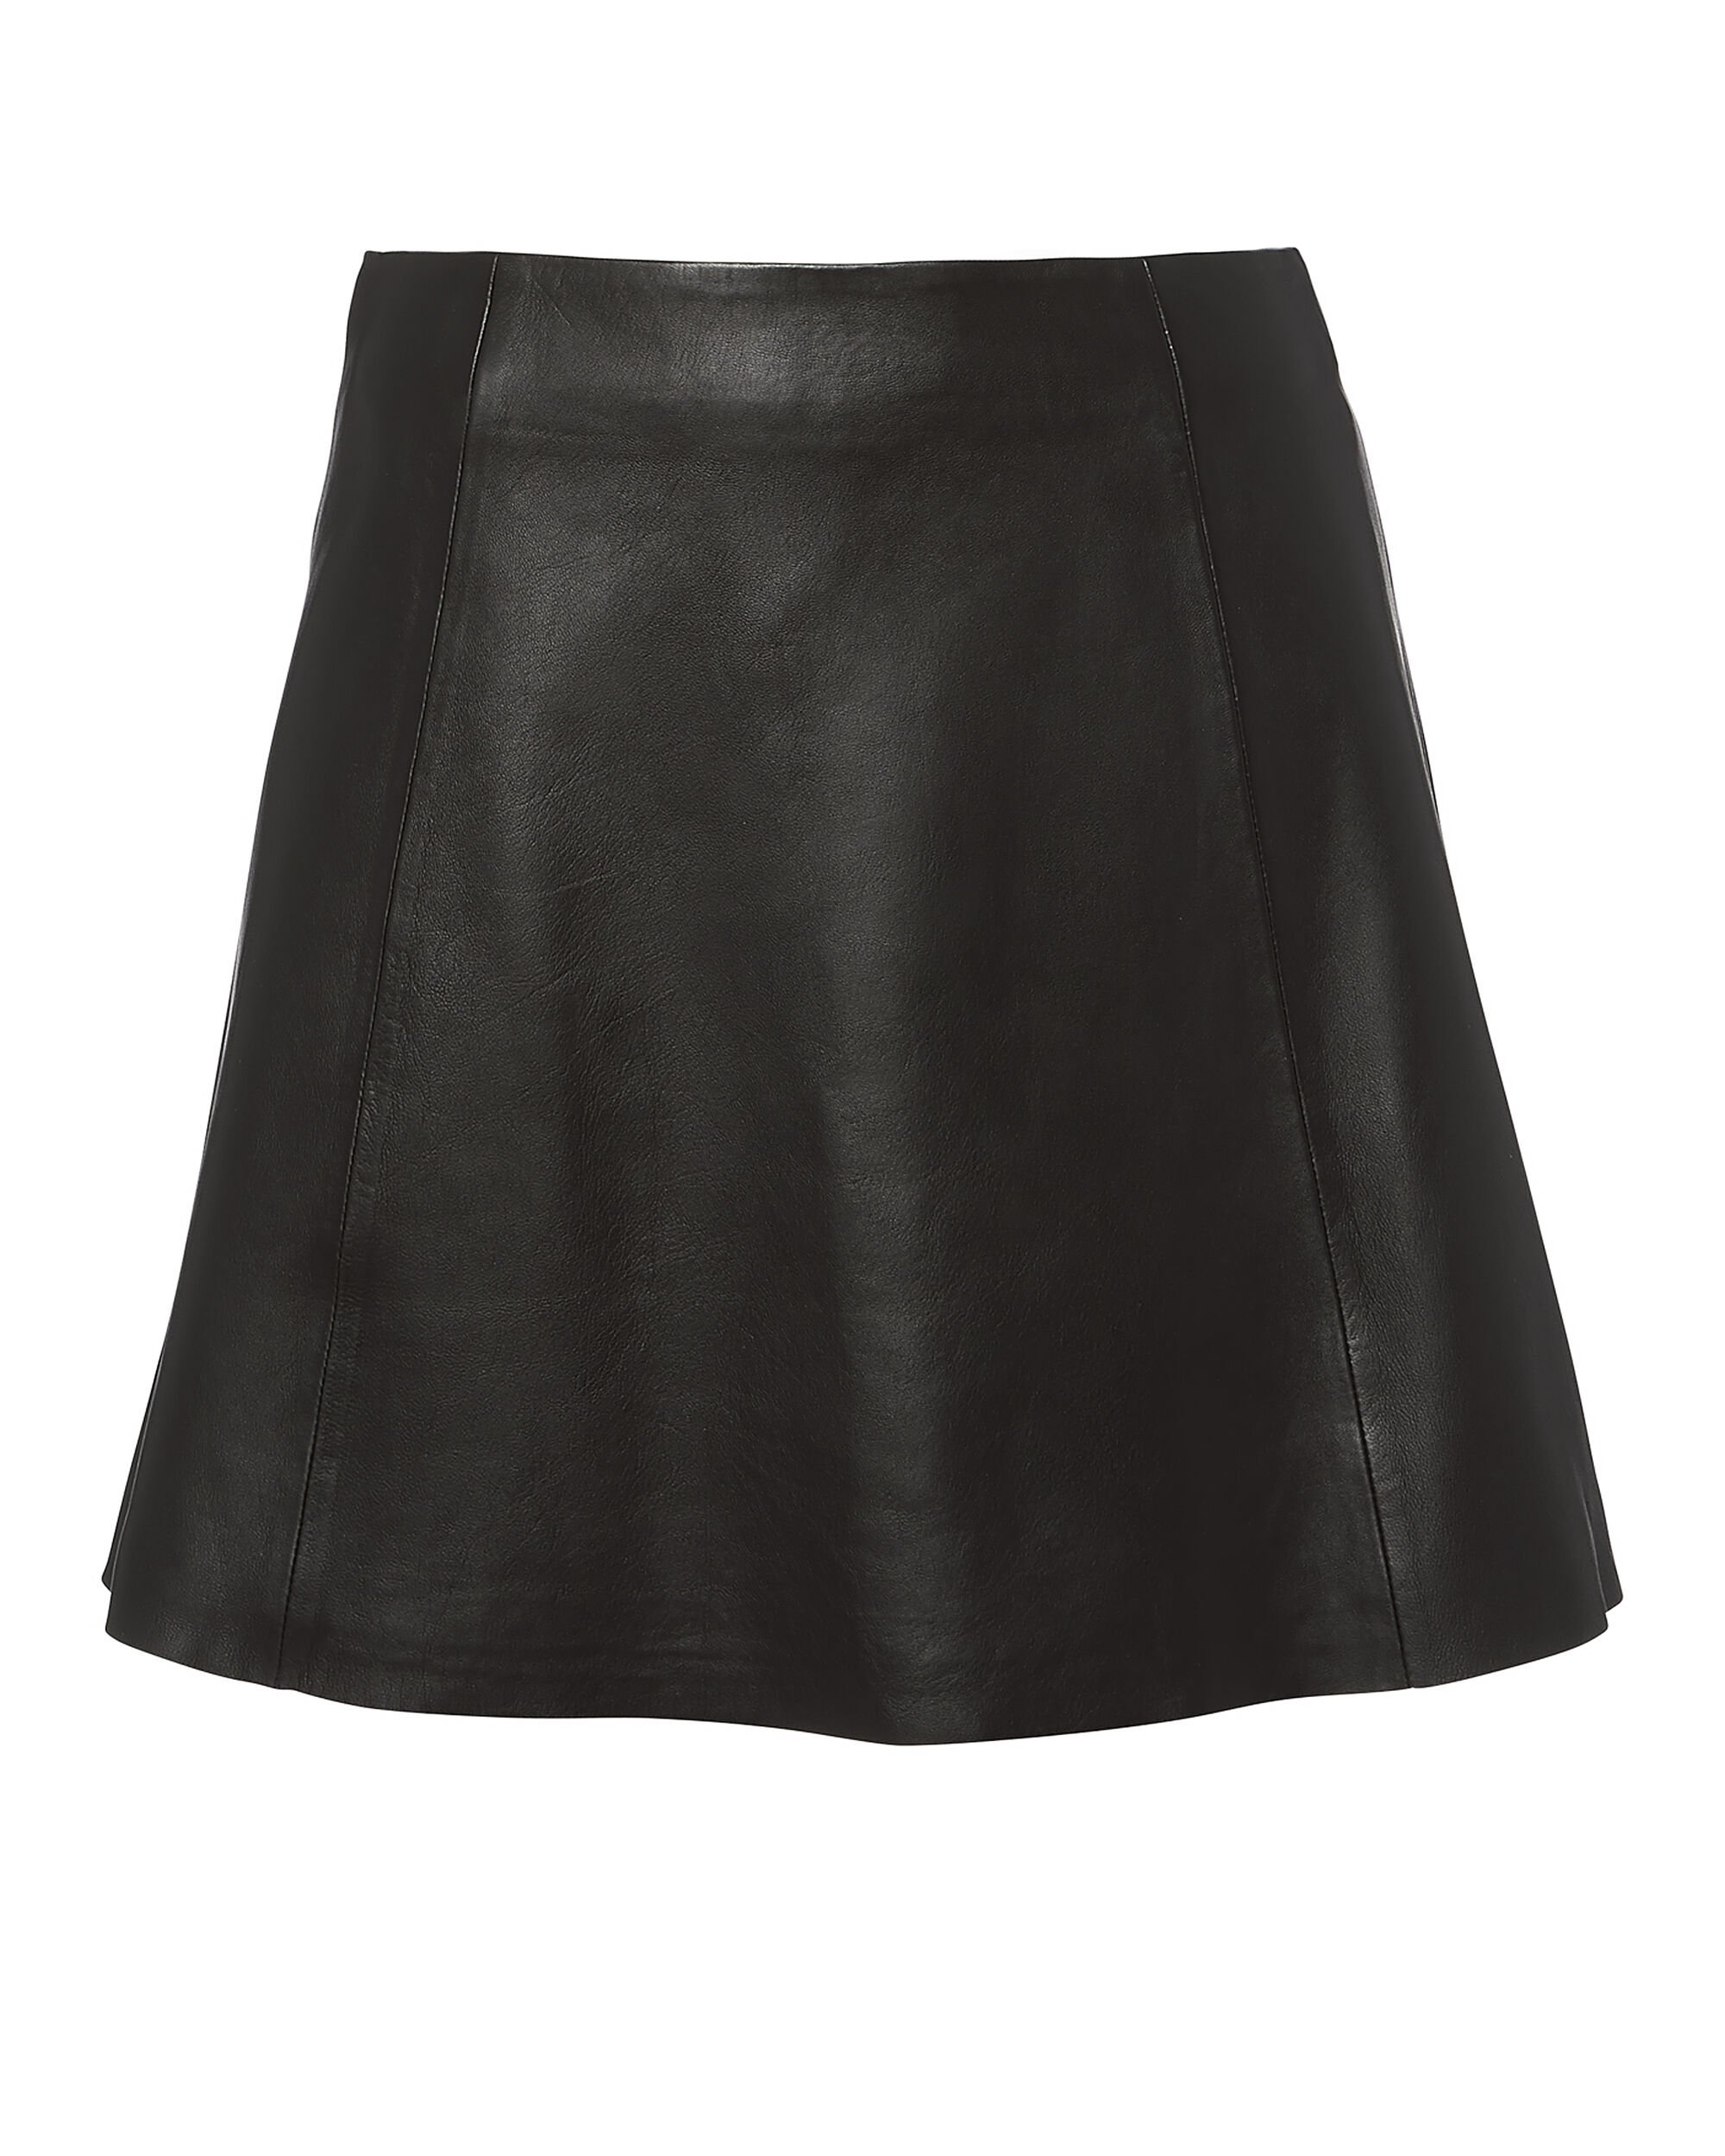 Circle Leather Mini Skirt, BLACK, hi-res